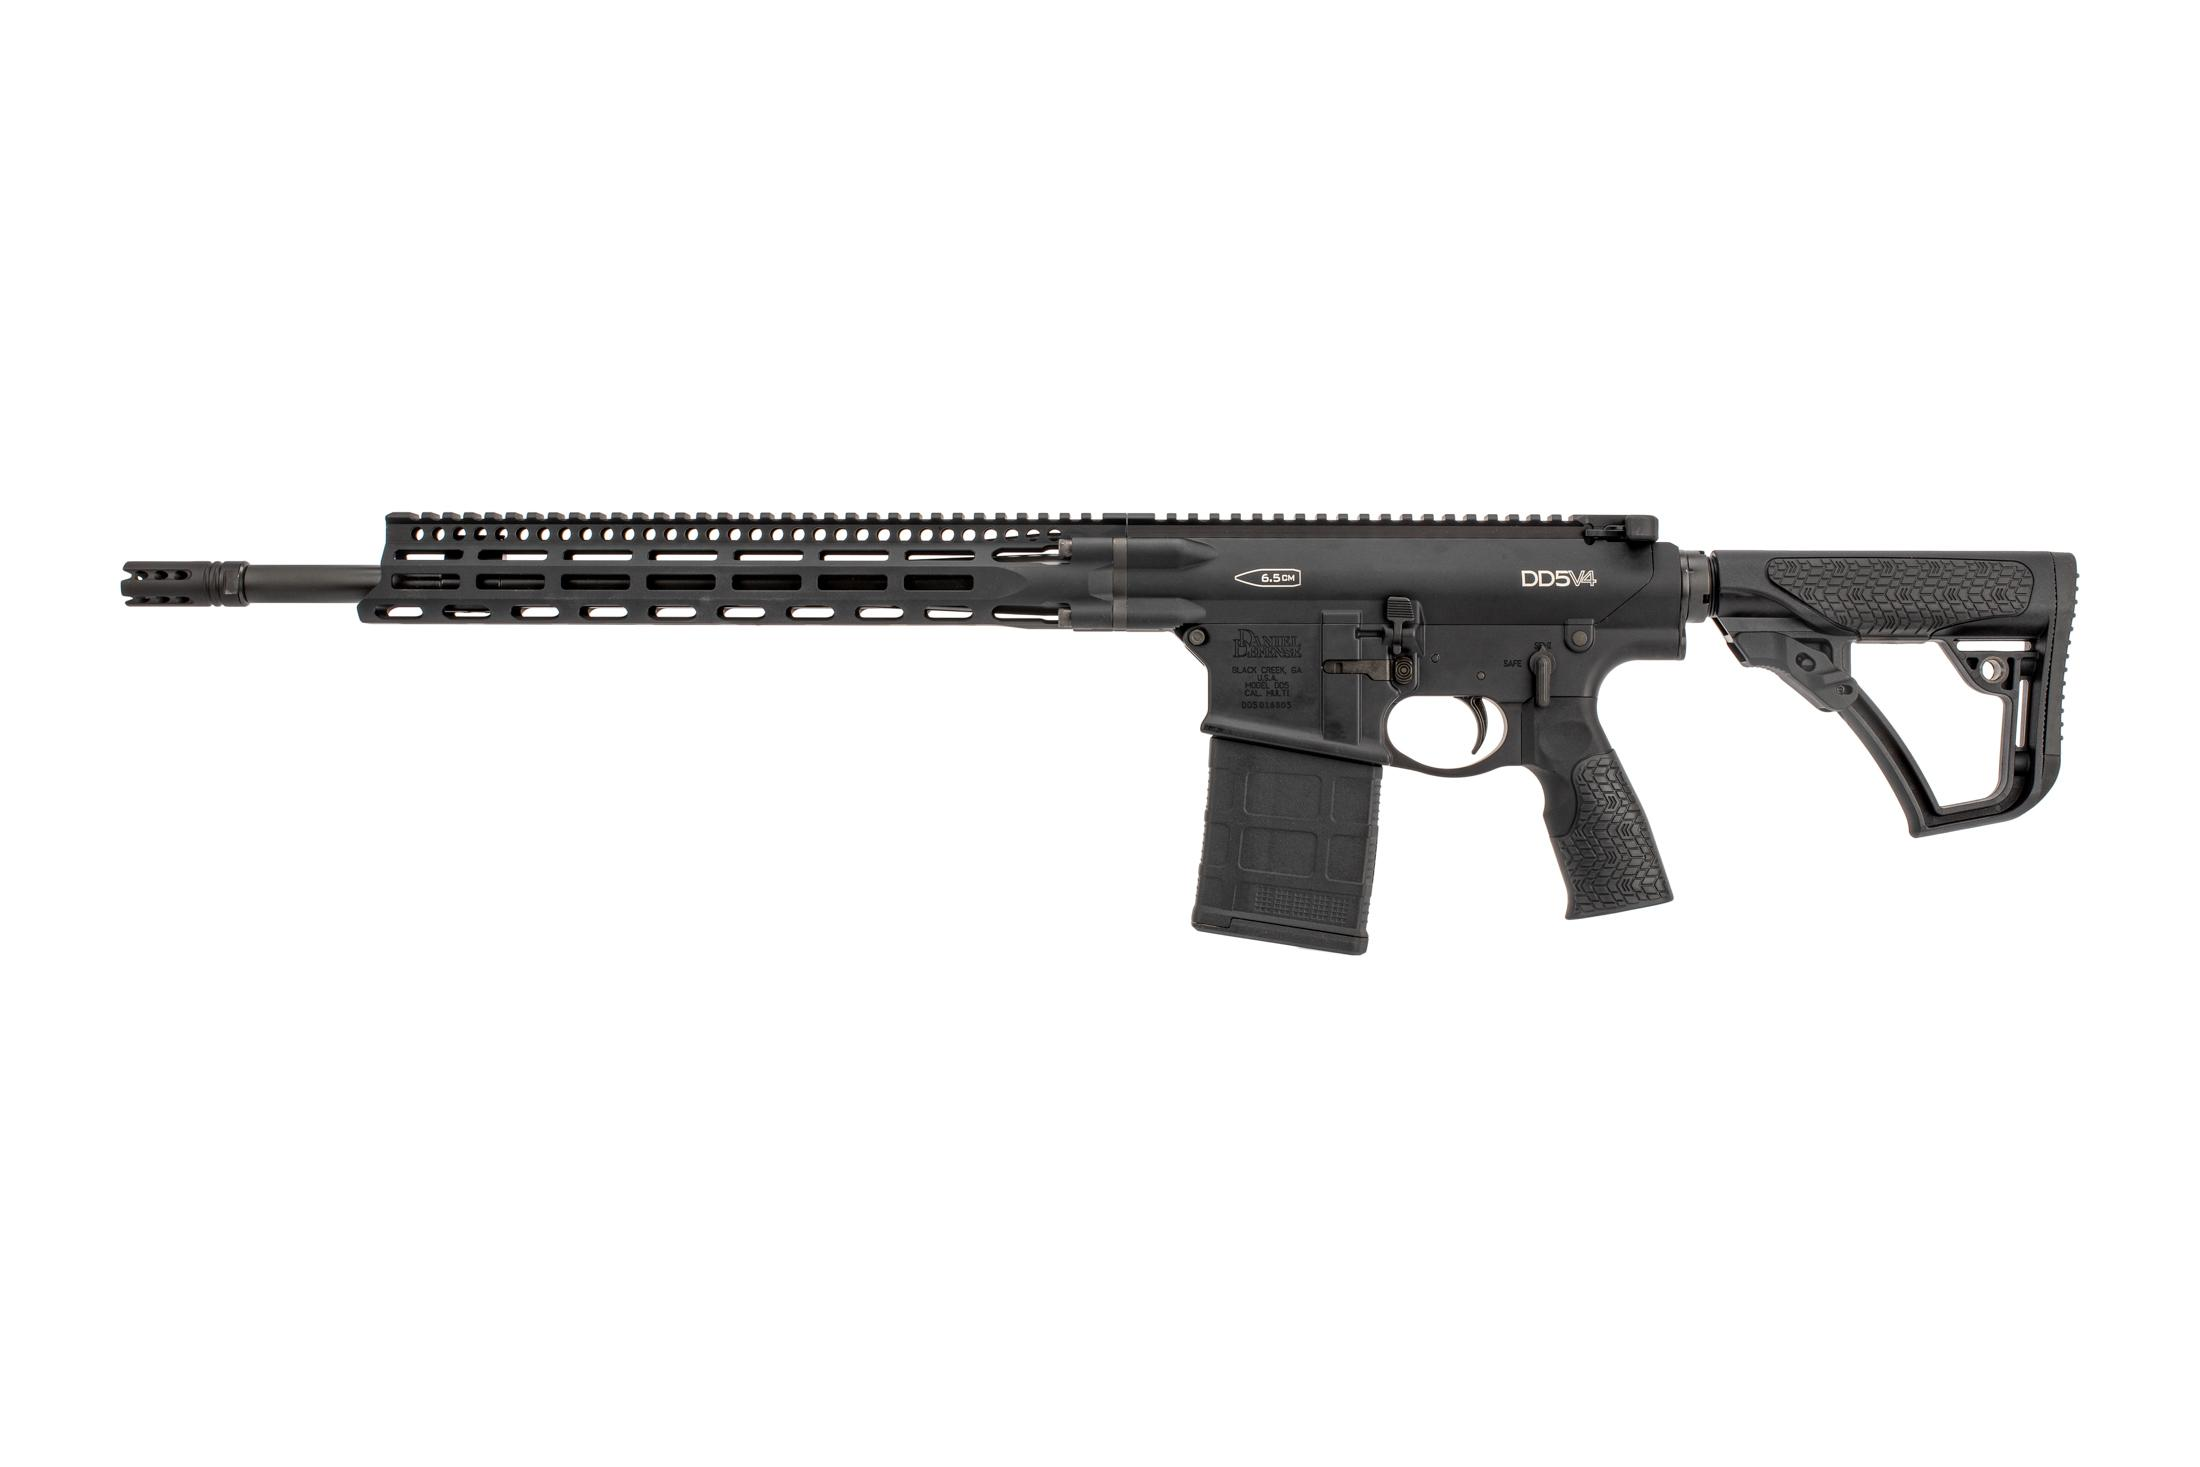 Daniel Defense DD5V4 6.5 CM complete rifle with M-lok rail features ambidextrous controls and flash suppressor.